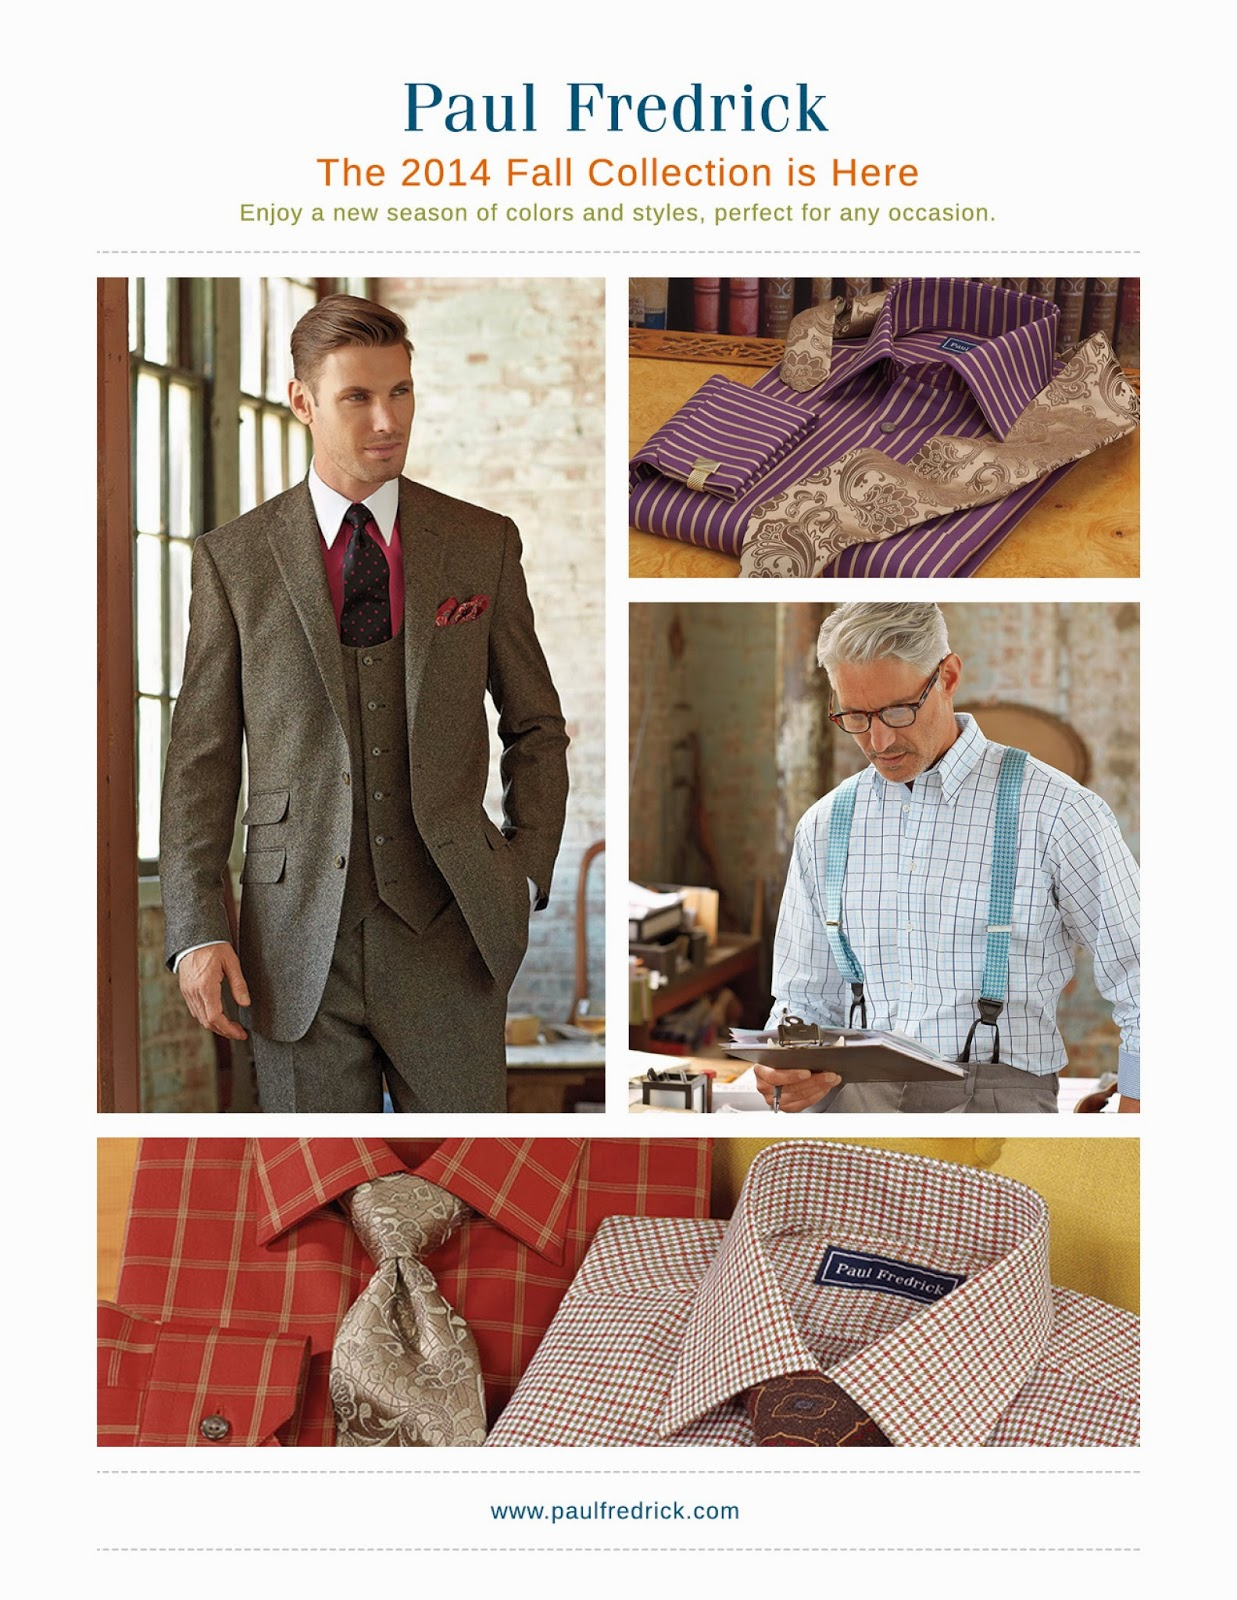 http://www.paulfredrick.com/Catalog/PFProducts.aspx?category=Dress_Shirts;clearance=No;&sc=CHF1PB&redirect=true